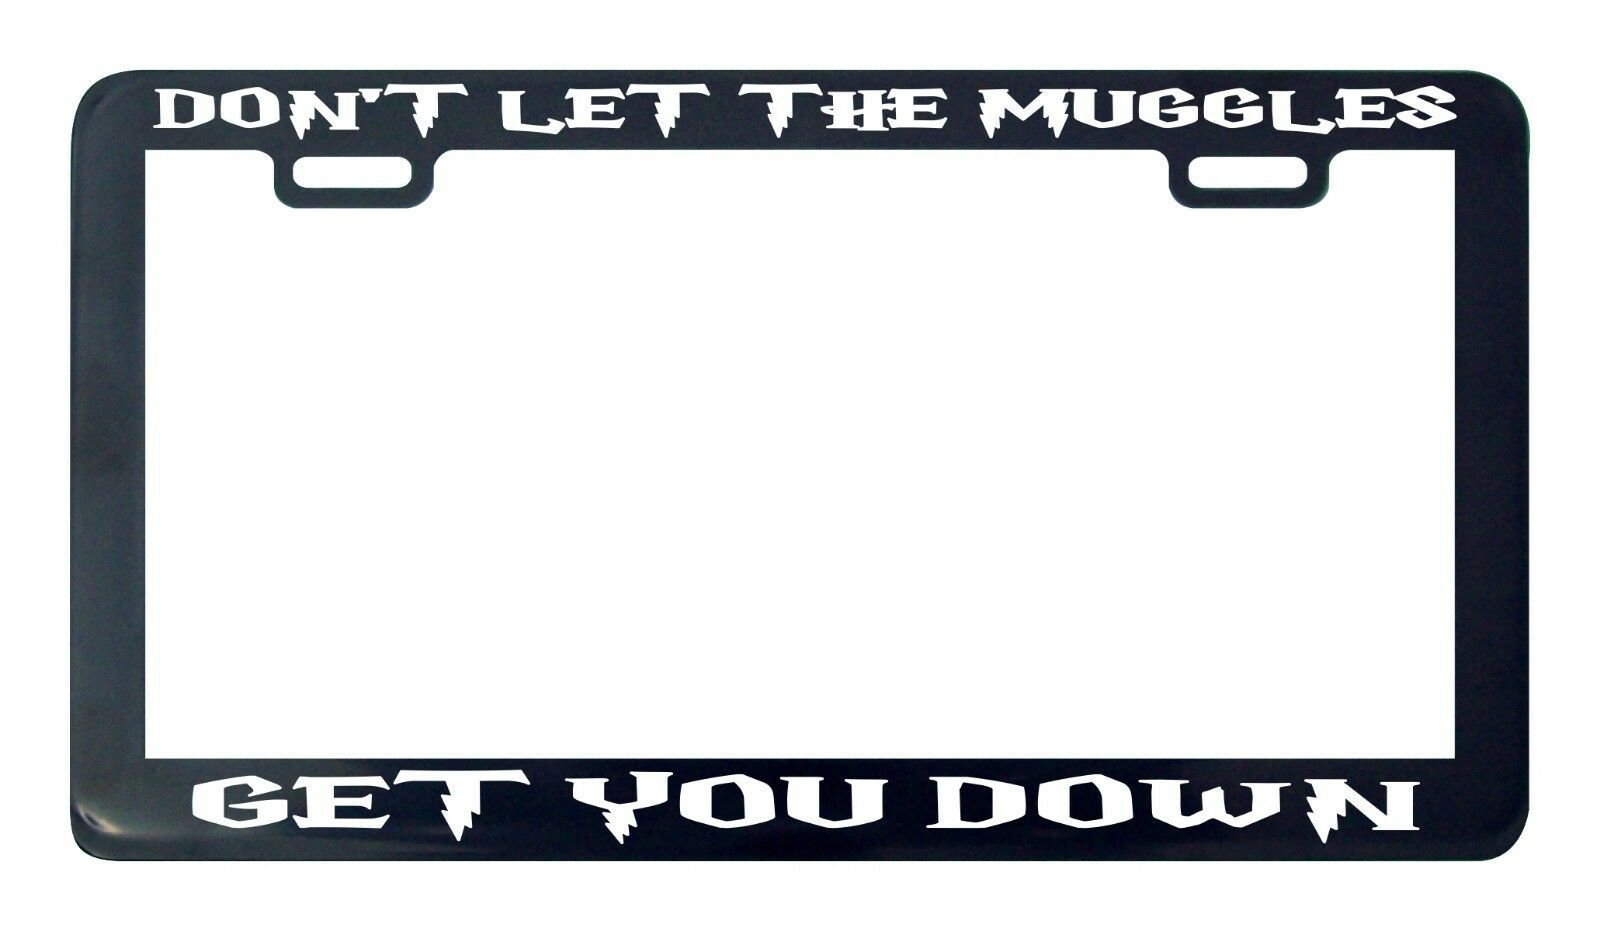 Primary image for Don't let the muggles get you down potter license plate frame holder